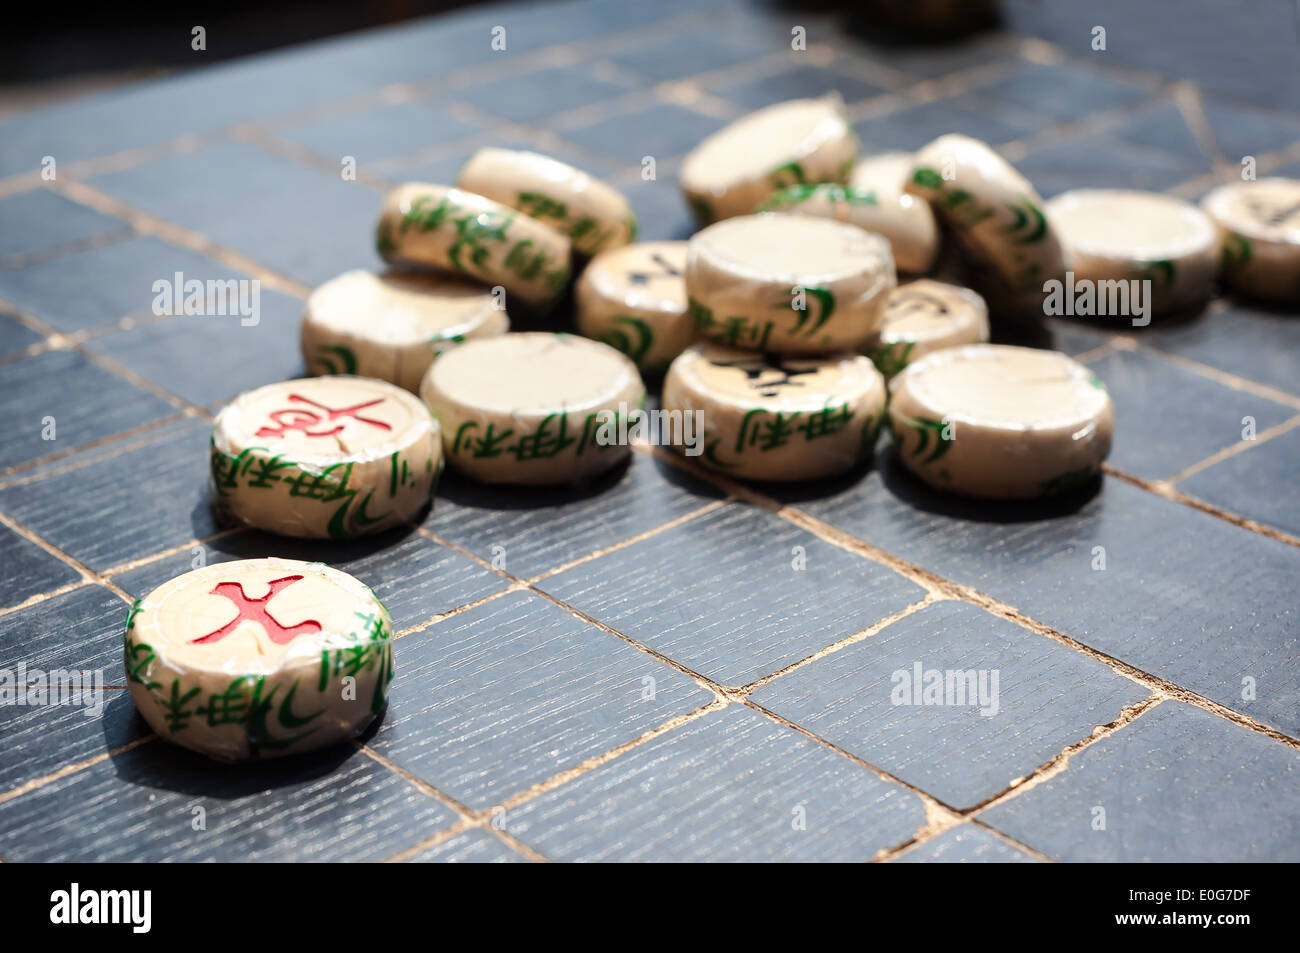 Xiangqi pieces on a Chinese chess board - Stock Image